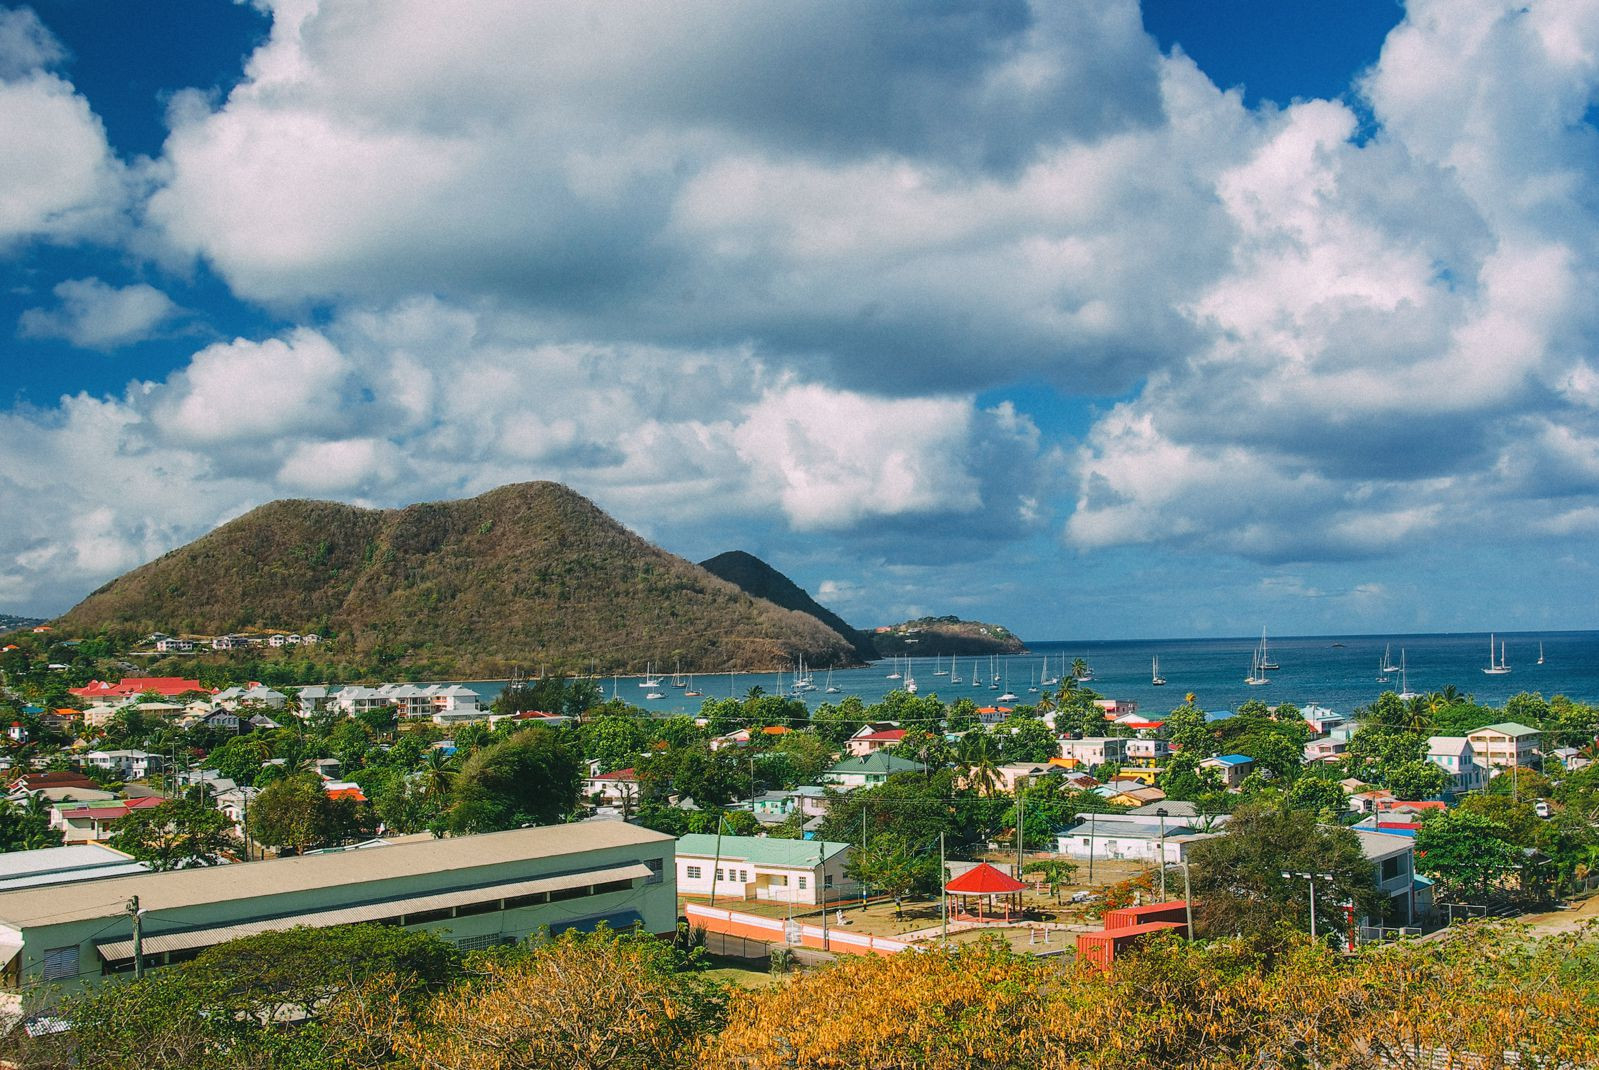 Explore The Beauty Of Caribbean: 11 Best Things To Do In St Lucia